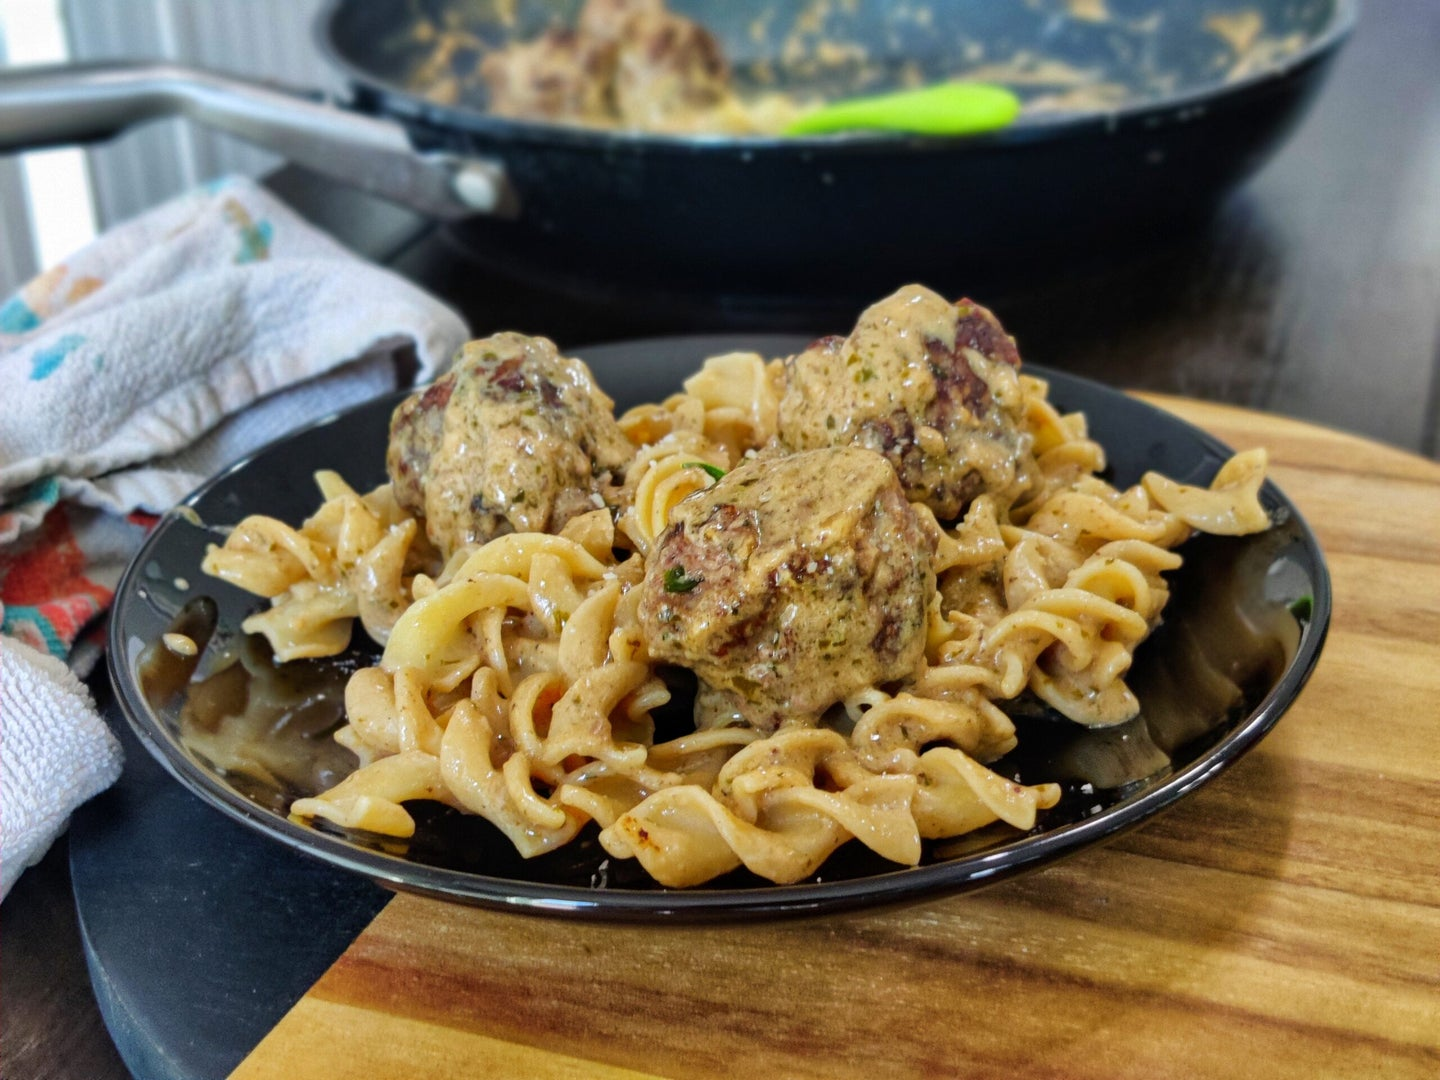 Delicious and easy to make, venison meatballs will be a family favorite.